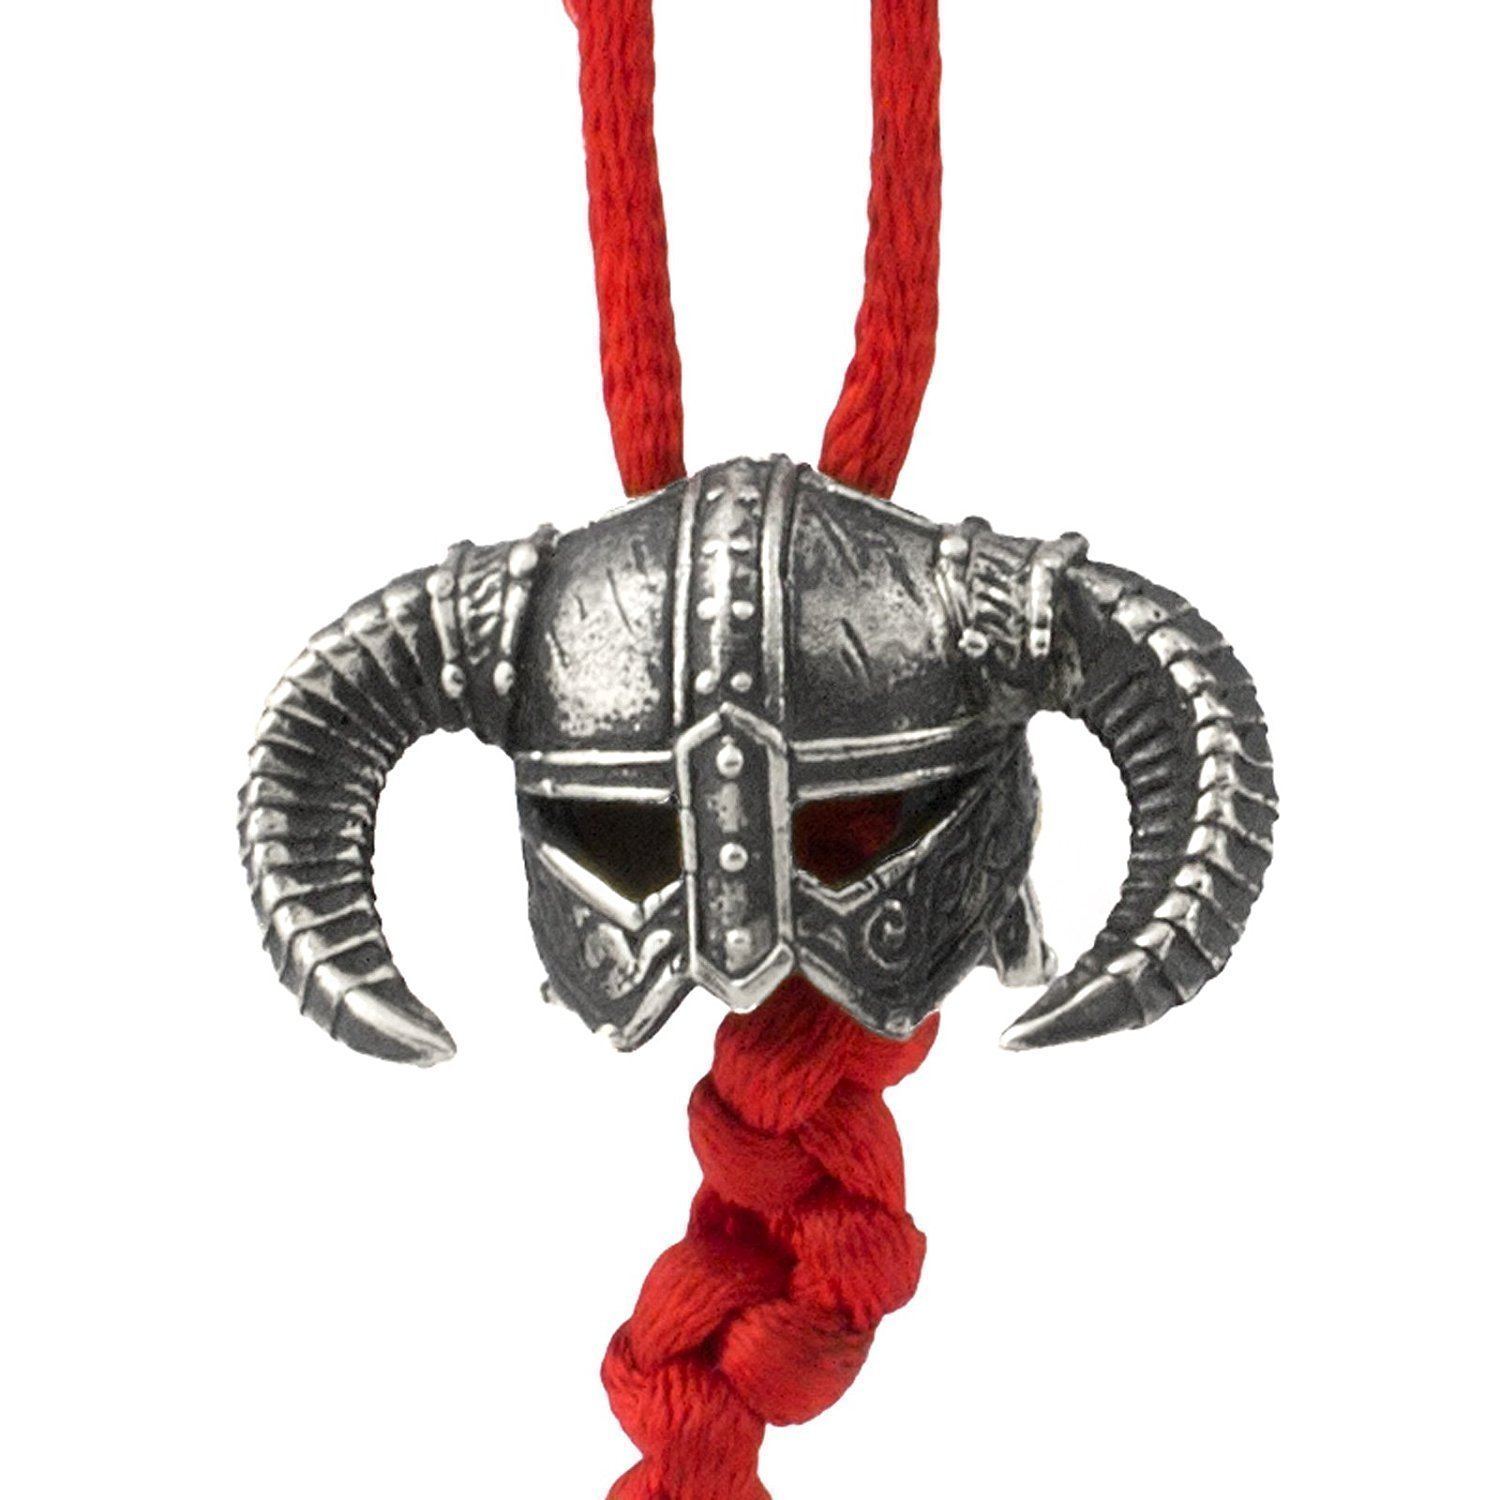 Paracord Bead Viking Helmet - Metal DIY Paracord Beads Charms EDC Accessories for Custom Bracelet Knife Lanyard Zipper Pull - Handmade Paracord Charms Supplies Crafts